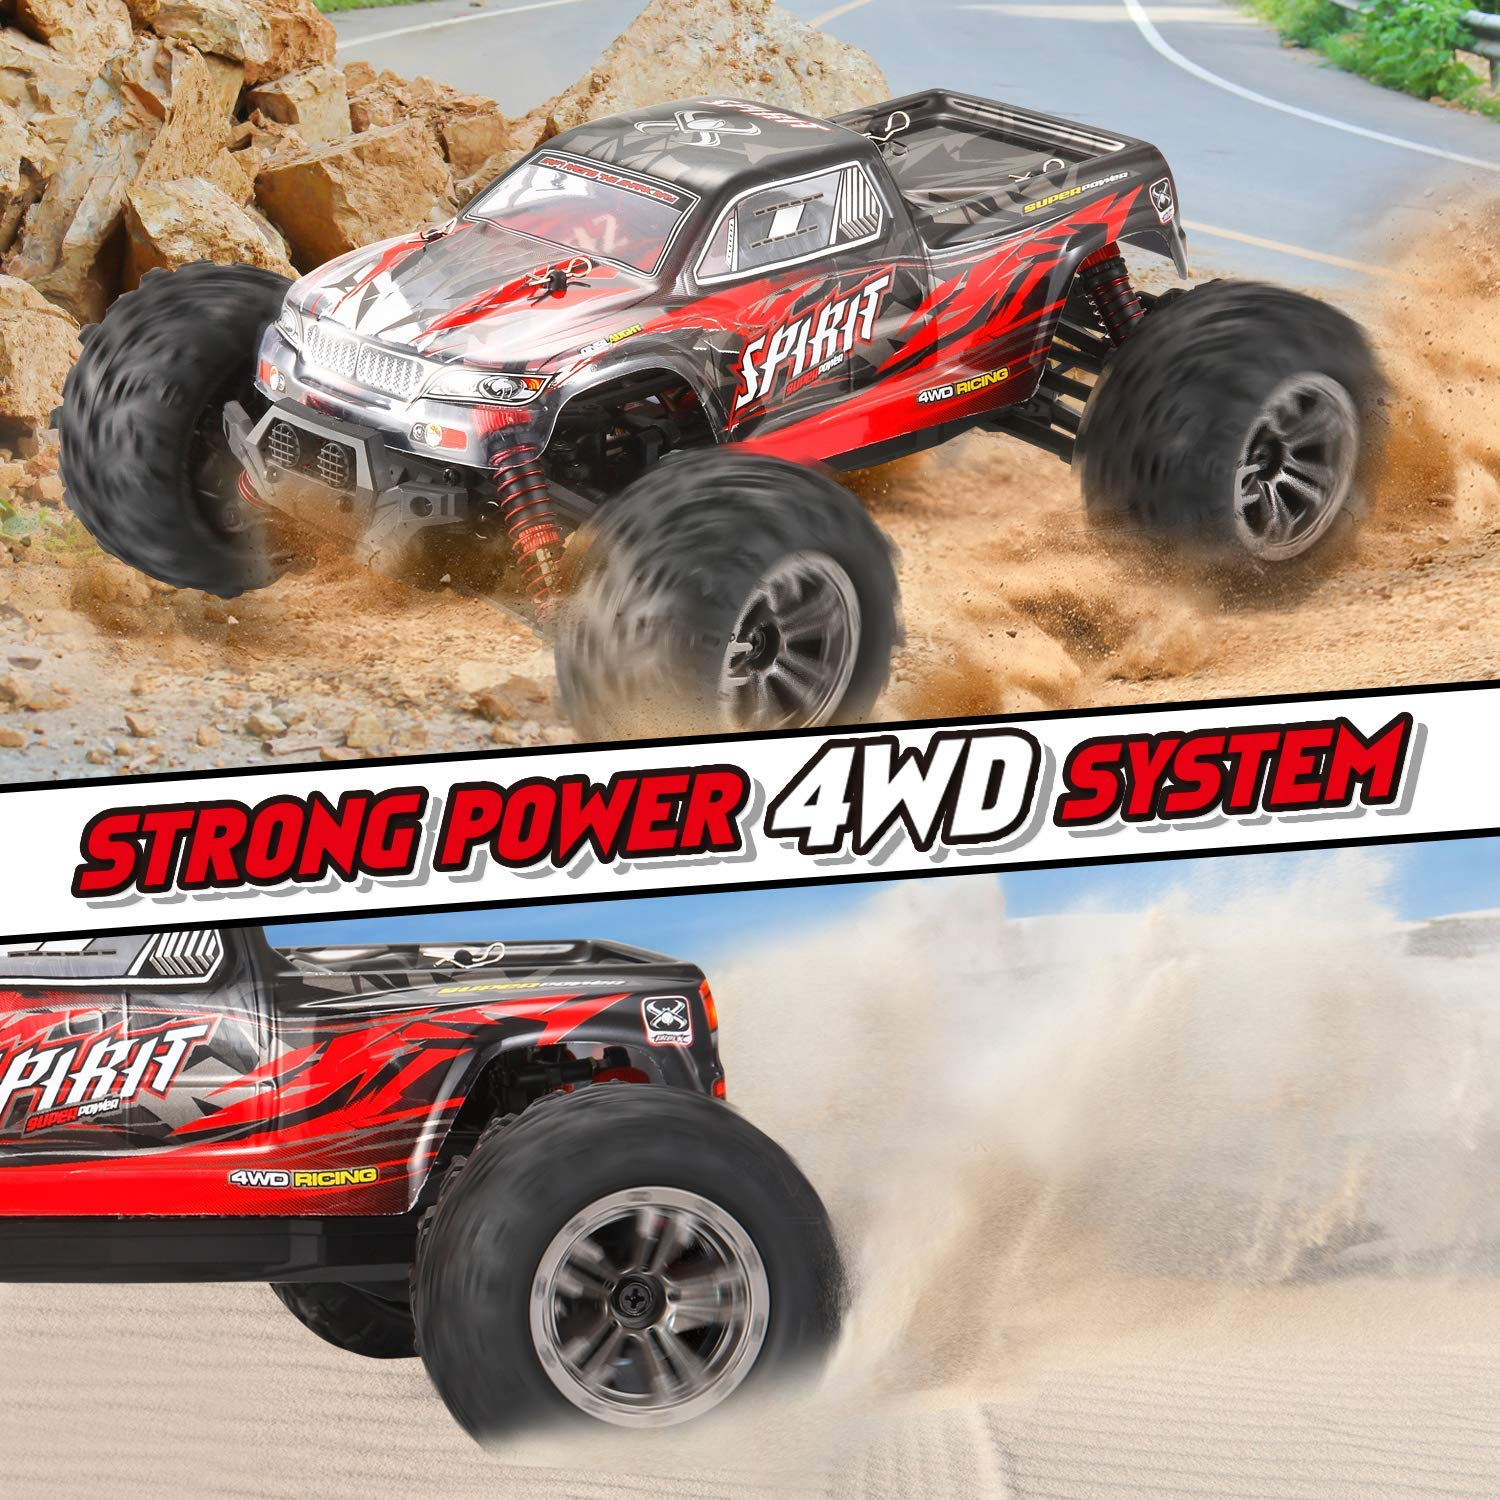 VATOS Remote Control Car High Speed Off-Road Vehicle 1:16 Scale 36km/h 4WD 2.4GHz Electric Racing Car RC Buggy Vehicle Truck Buggy Crawler Toy Car for Adults and Kids by VATOS (Image #5)